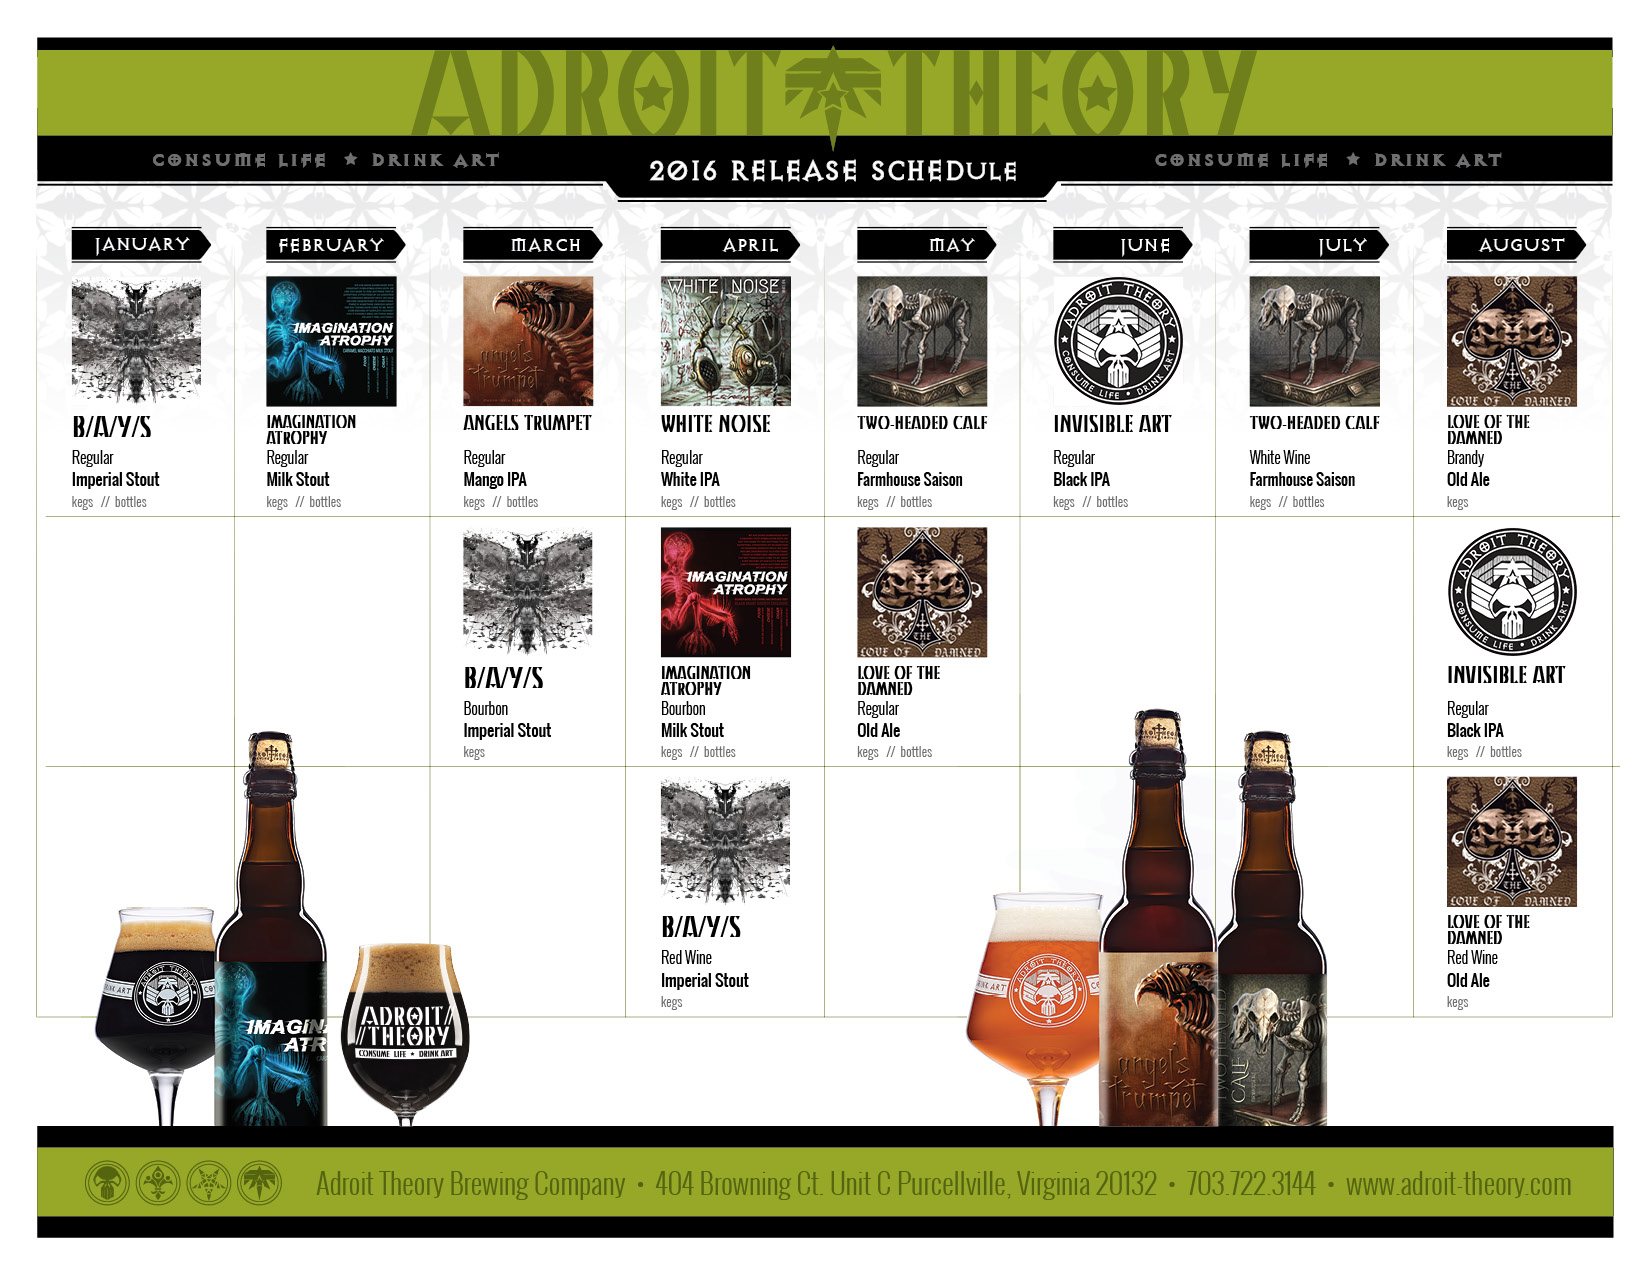 2016 Adroit Theory Beer Release Calendar